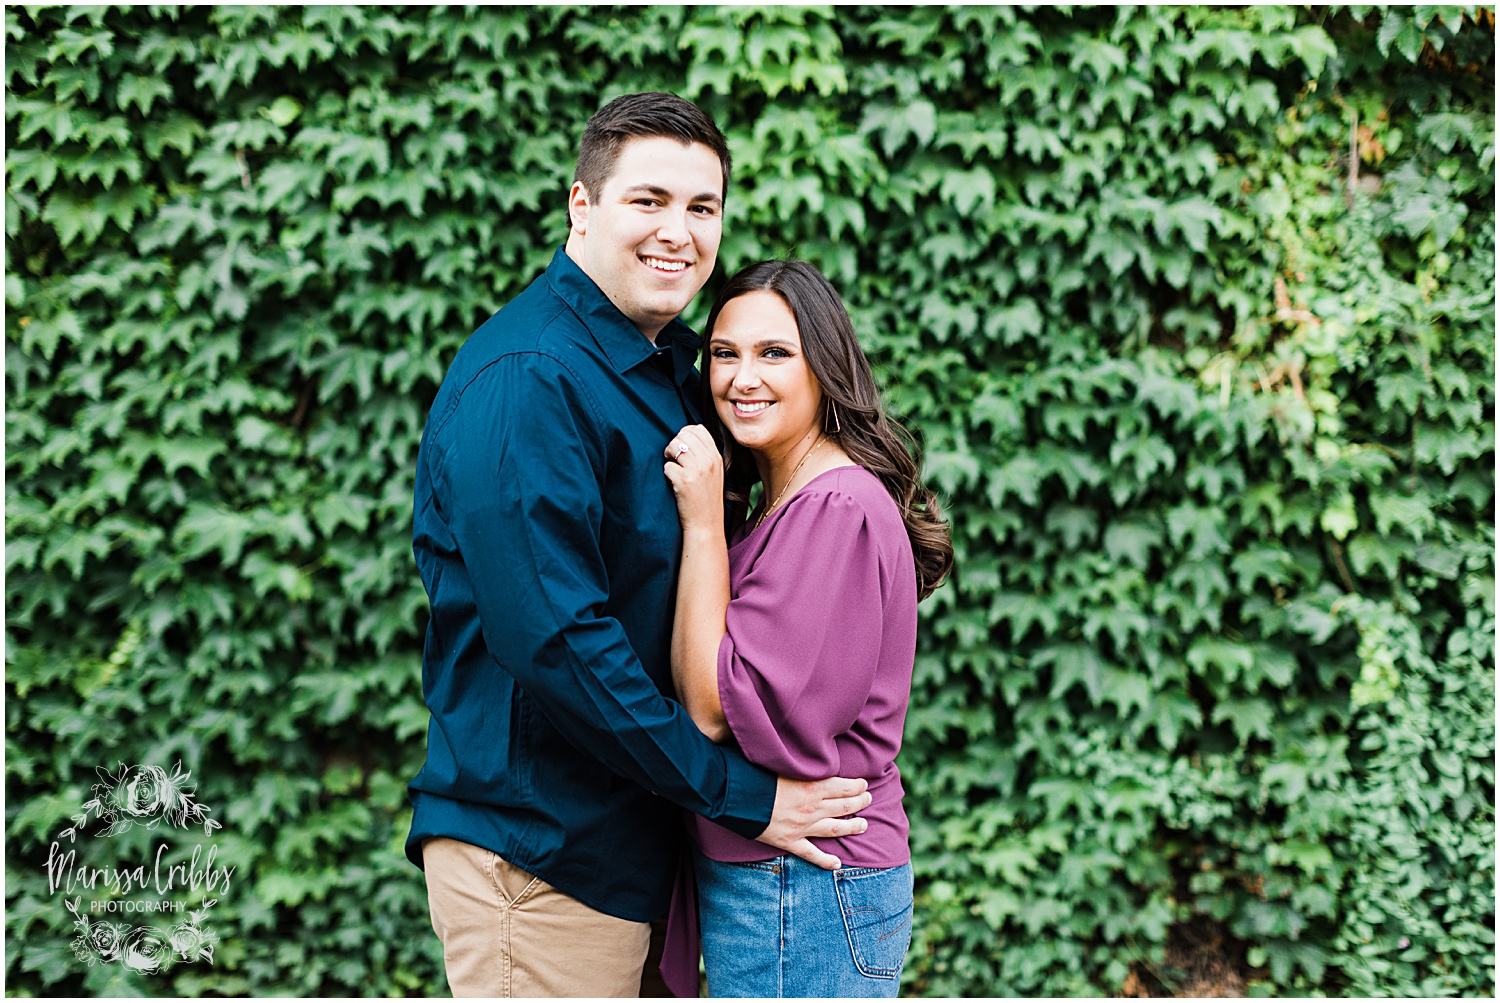 MORGAN & KEVIN ENGAGEMENT BLOG | MARISSA CRIBBS PHOTOGRAPHY_8286.jpg